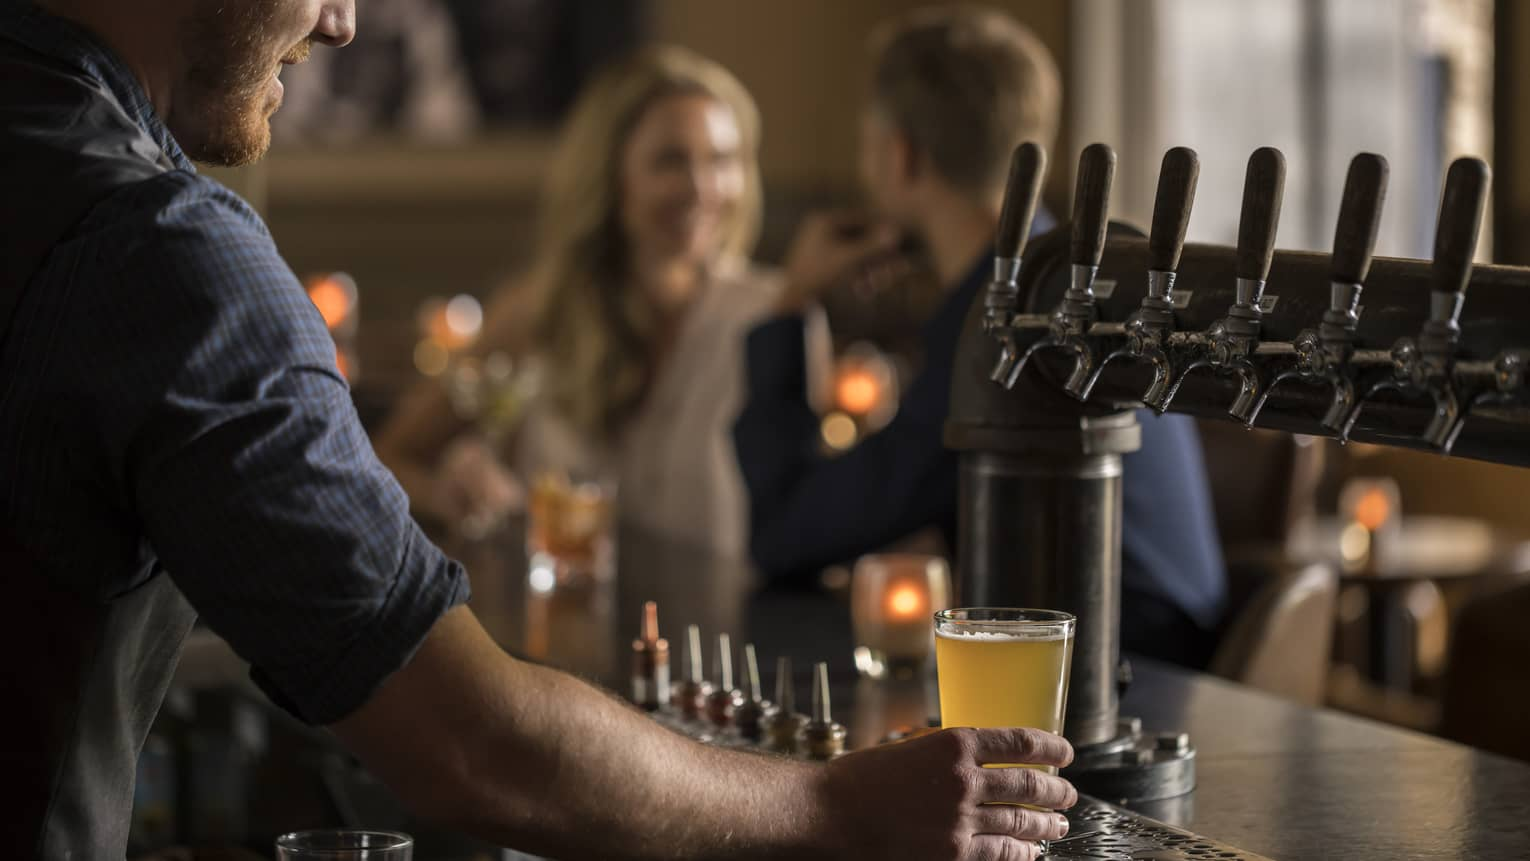 Close-up of bartender pouring beer at taps, couple at bar in background